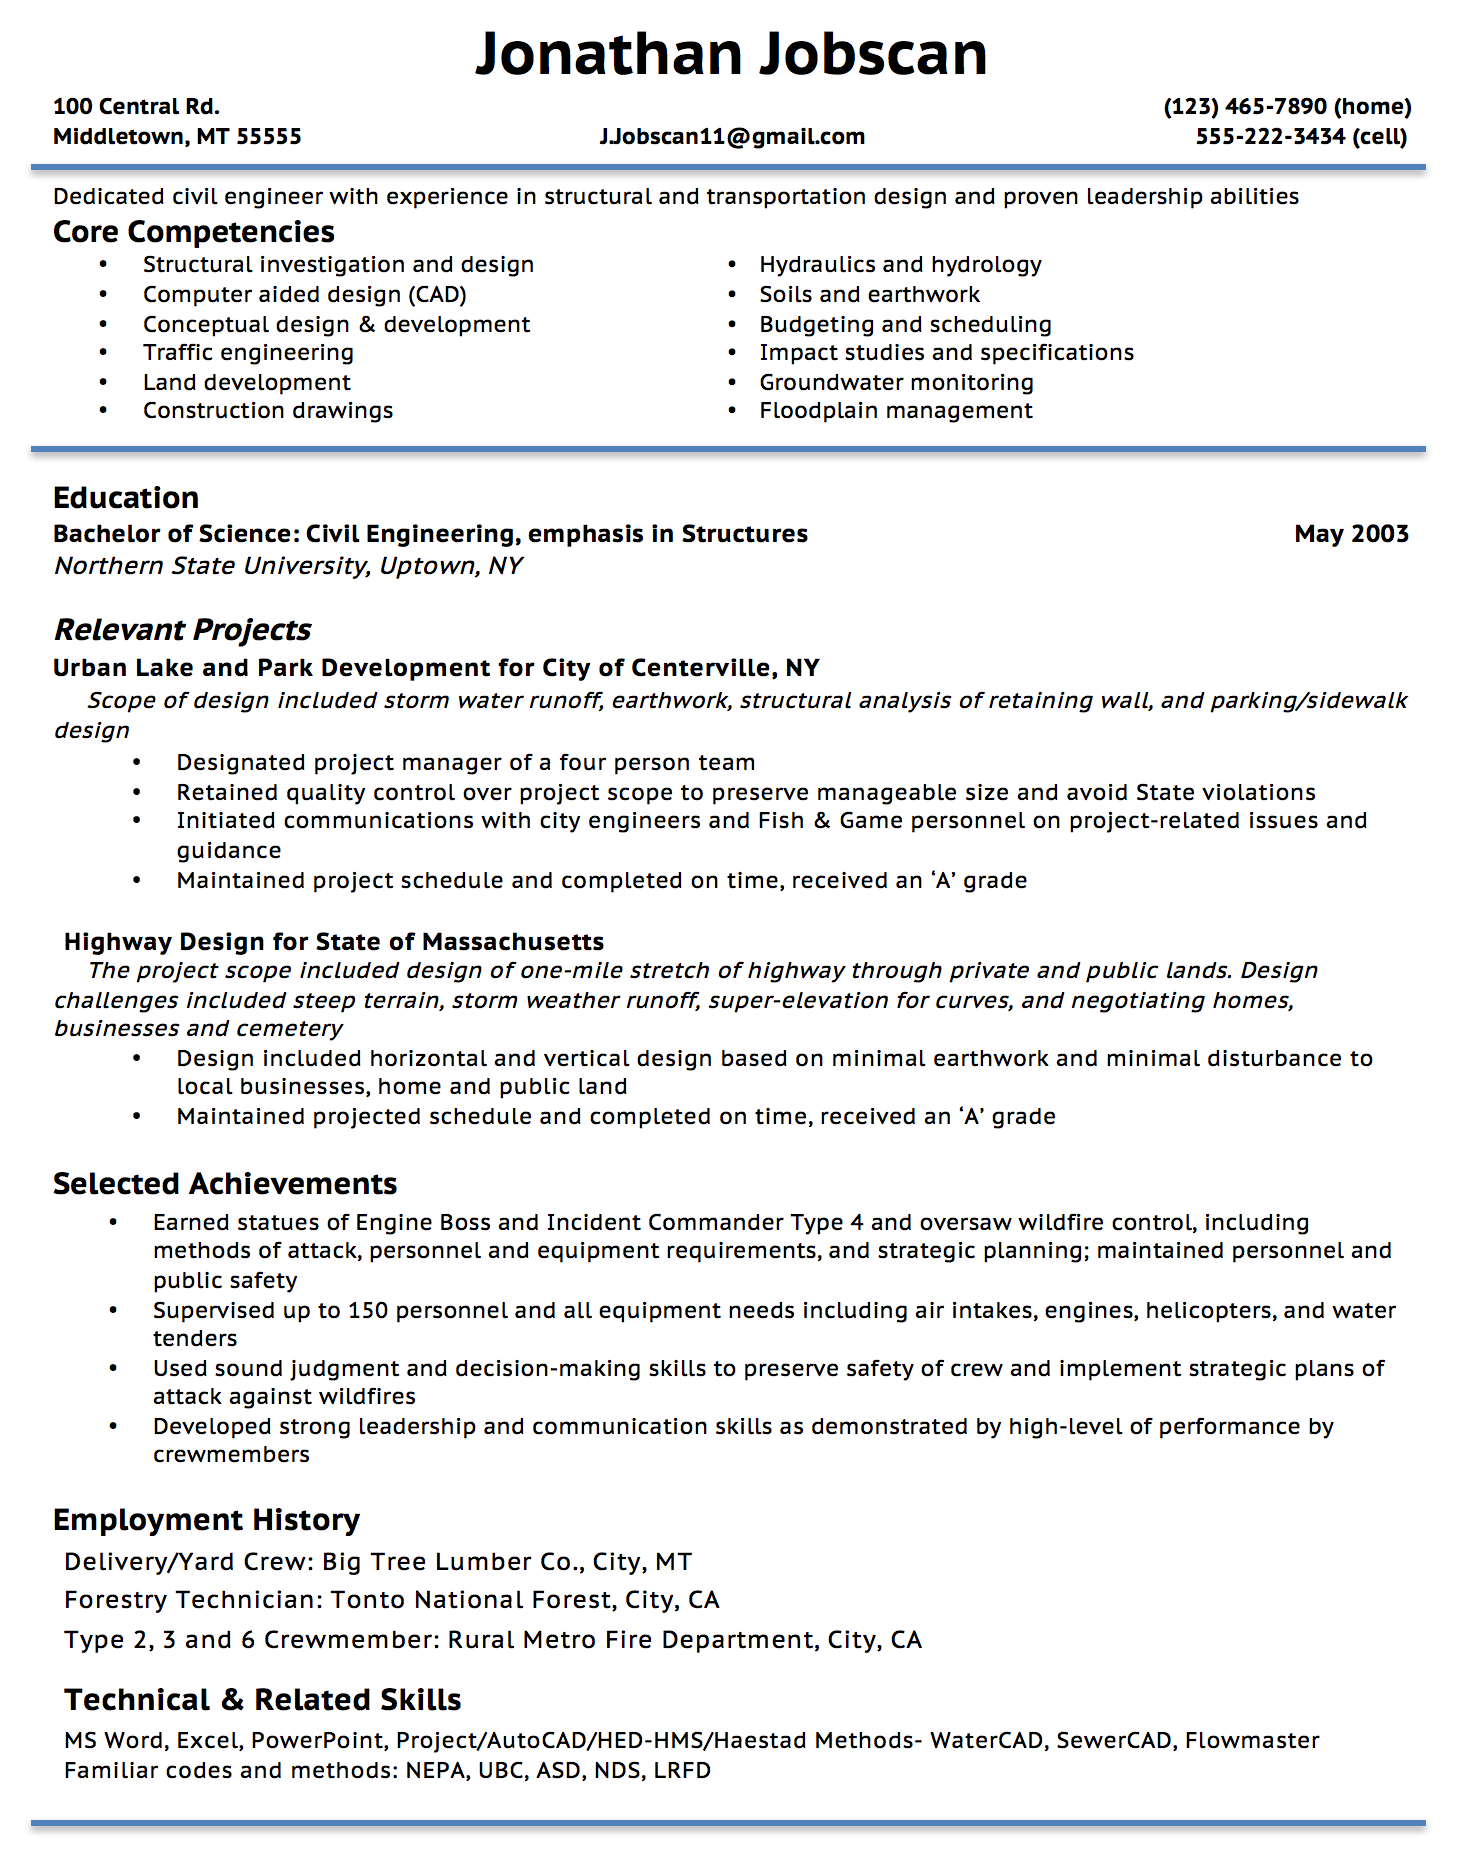 Opposenewapstandardsus  Fascinating Resume Writing Guide  Jobscan With Fetching Example Of A Functional Resume Format With Lovely Computer Programs For Resume Also Sales Resume Samples In Addition Internal Resume And Resume Place As Well As Example College Resume Additionally How To Make A Resume On Google Docs From Jobscanco With Opposenewapstandardsus  Fetching Resume Writing Guide  Jobscan With Lovely Example Of A Functional Resume Format And Fascinating Computer Programs For Resume Also Sales Resume Samples In Addition Internal Resume From Jobscanco